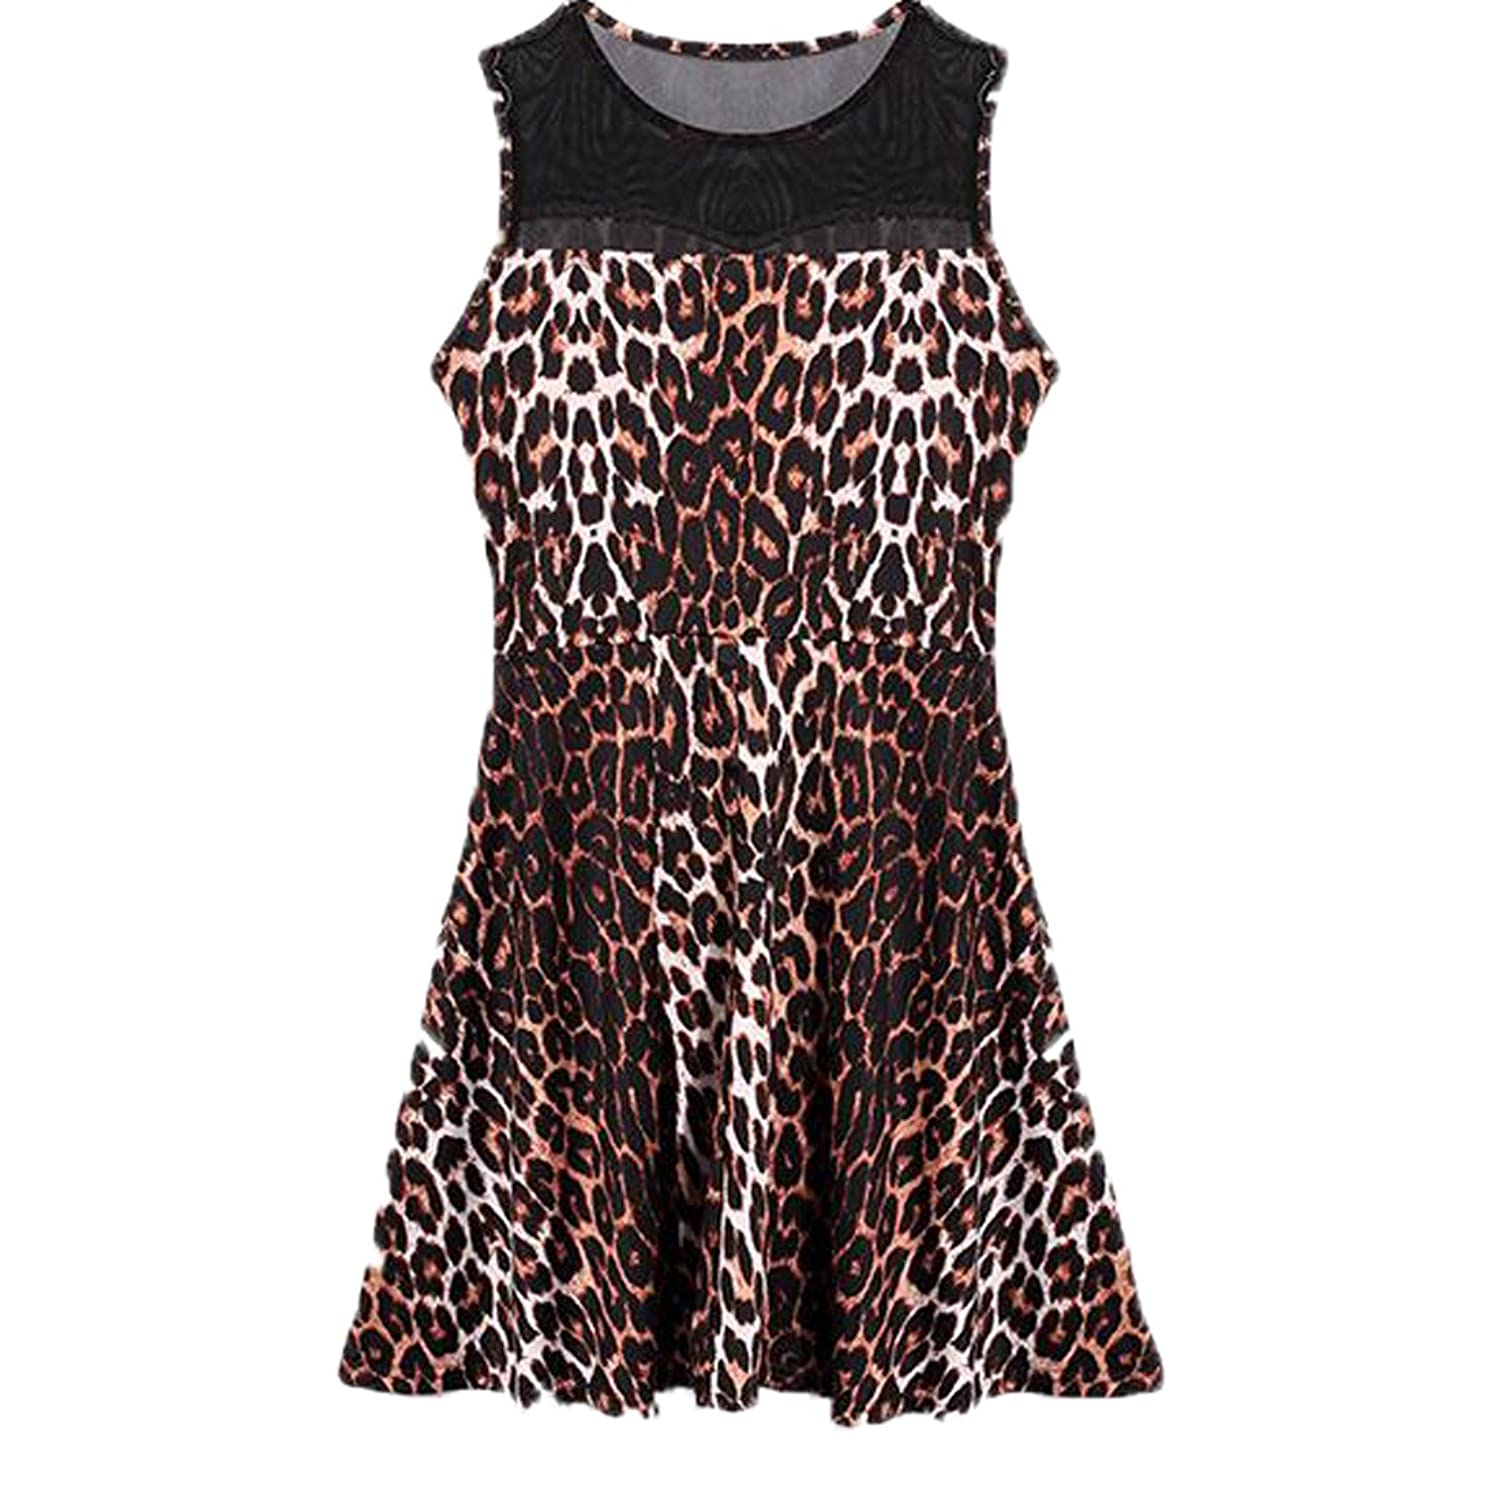 YUNY Women Sleeveless Leopard Slim Fit Hollow Mid Dress